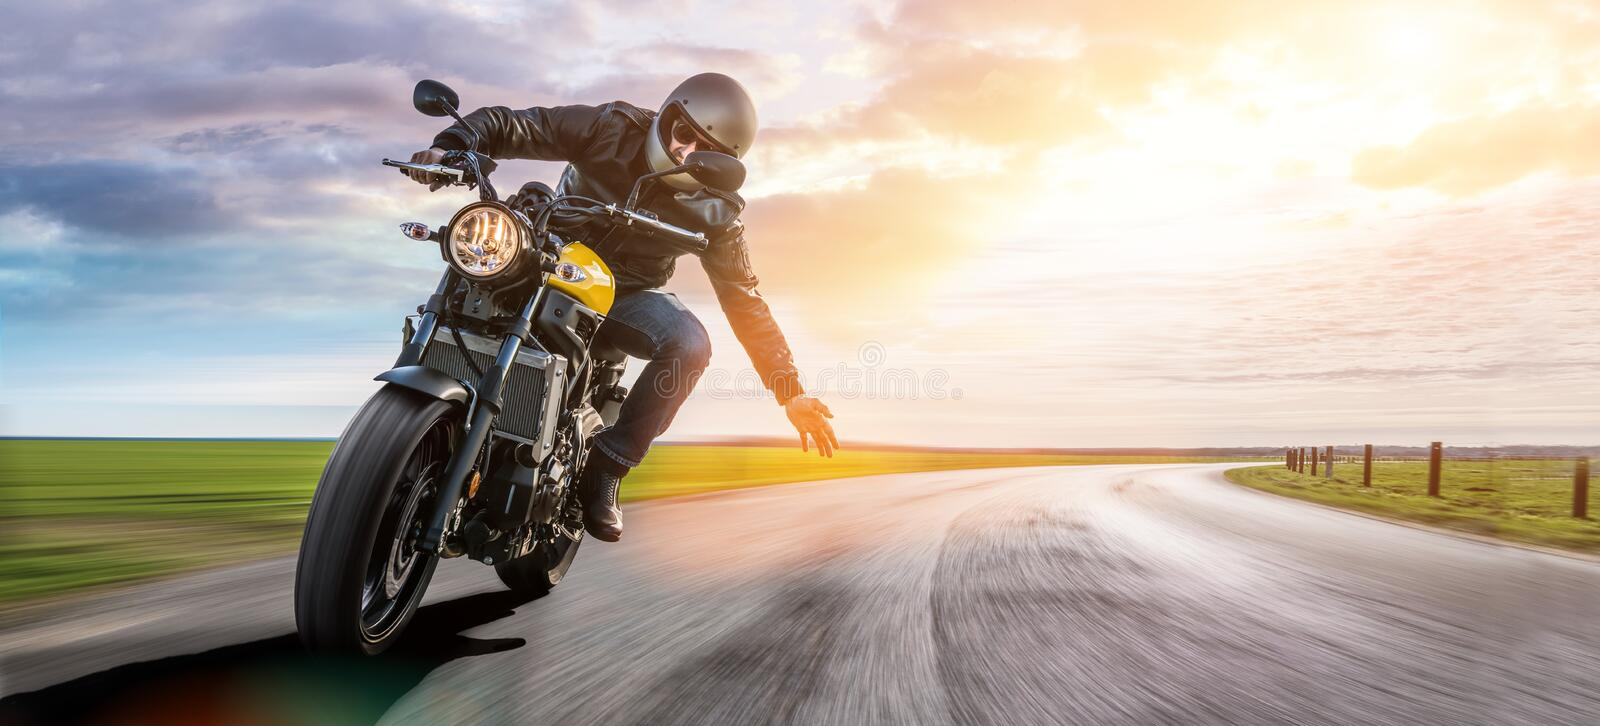 Man on a motorbike on the road riding. having fun driving the empty road on a motorcycle tour journey. royalty free stock photo